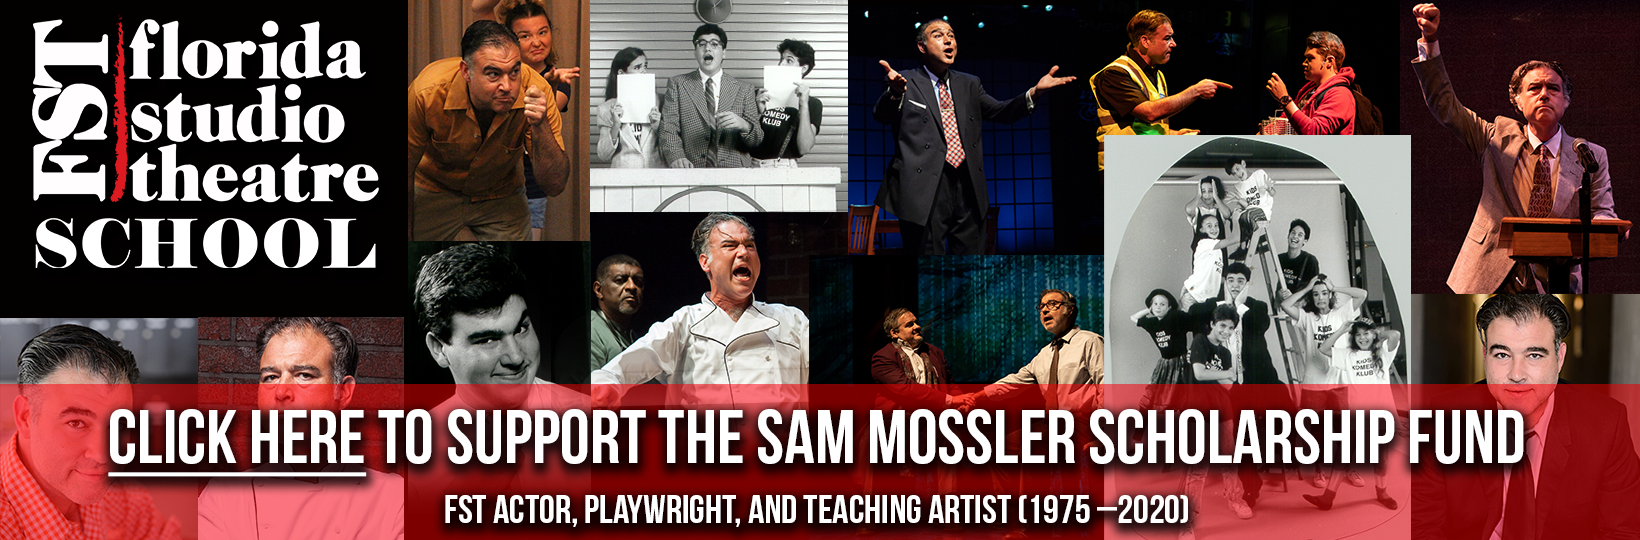 Sam Mossler Scholarship Fund